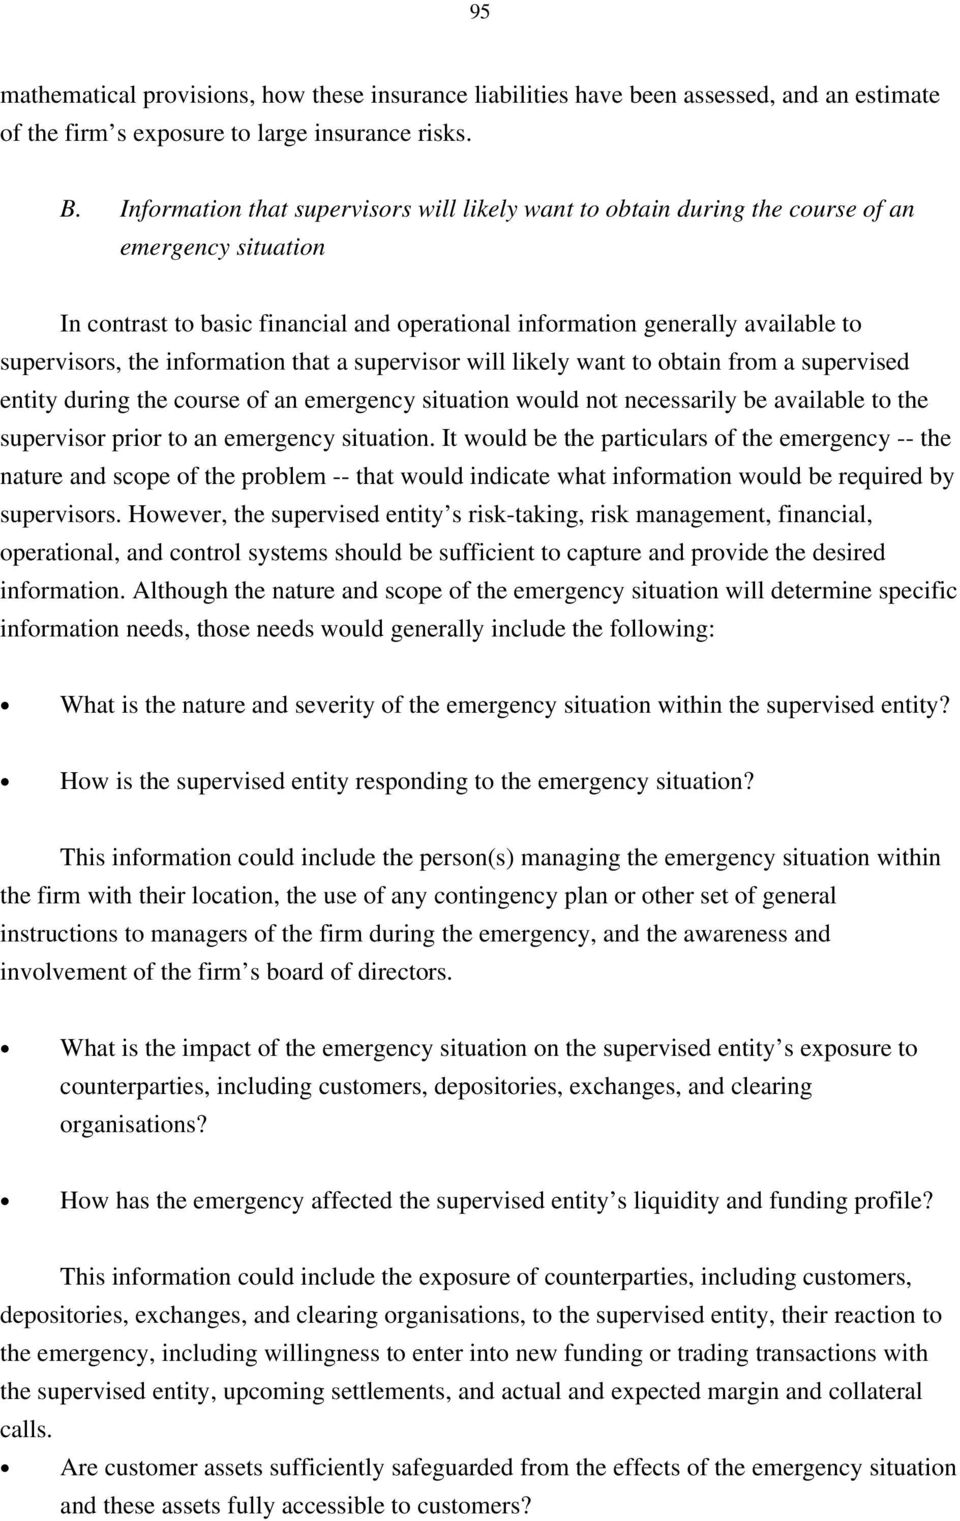 information that a supervisor will likely want to obtain from a supervised entity during the course of an emergency situation would not necessarily be available to the supervisor prior to an